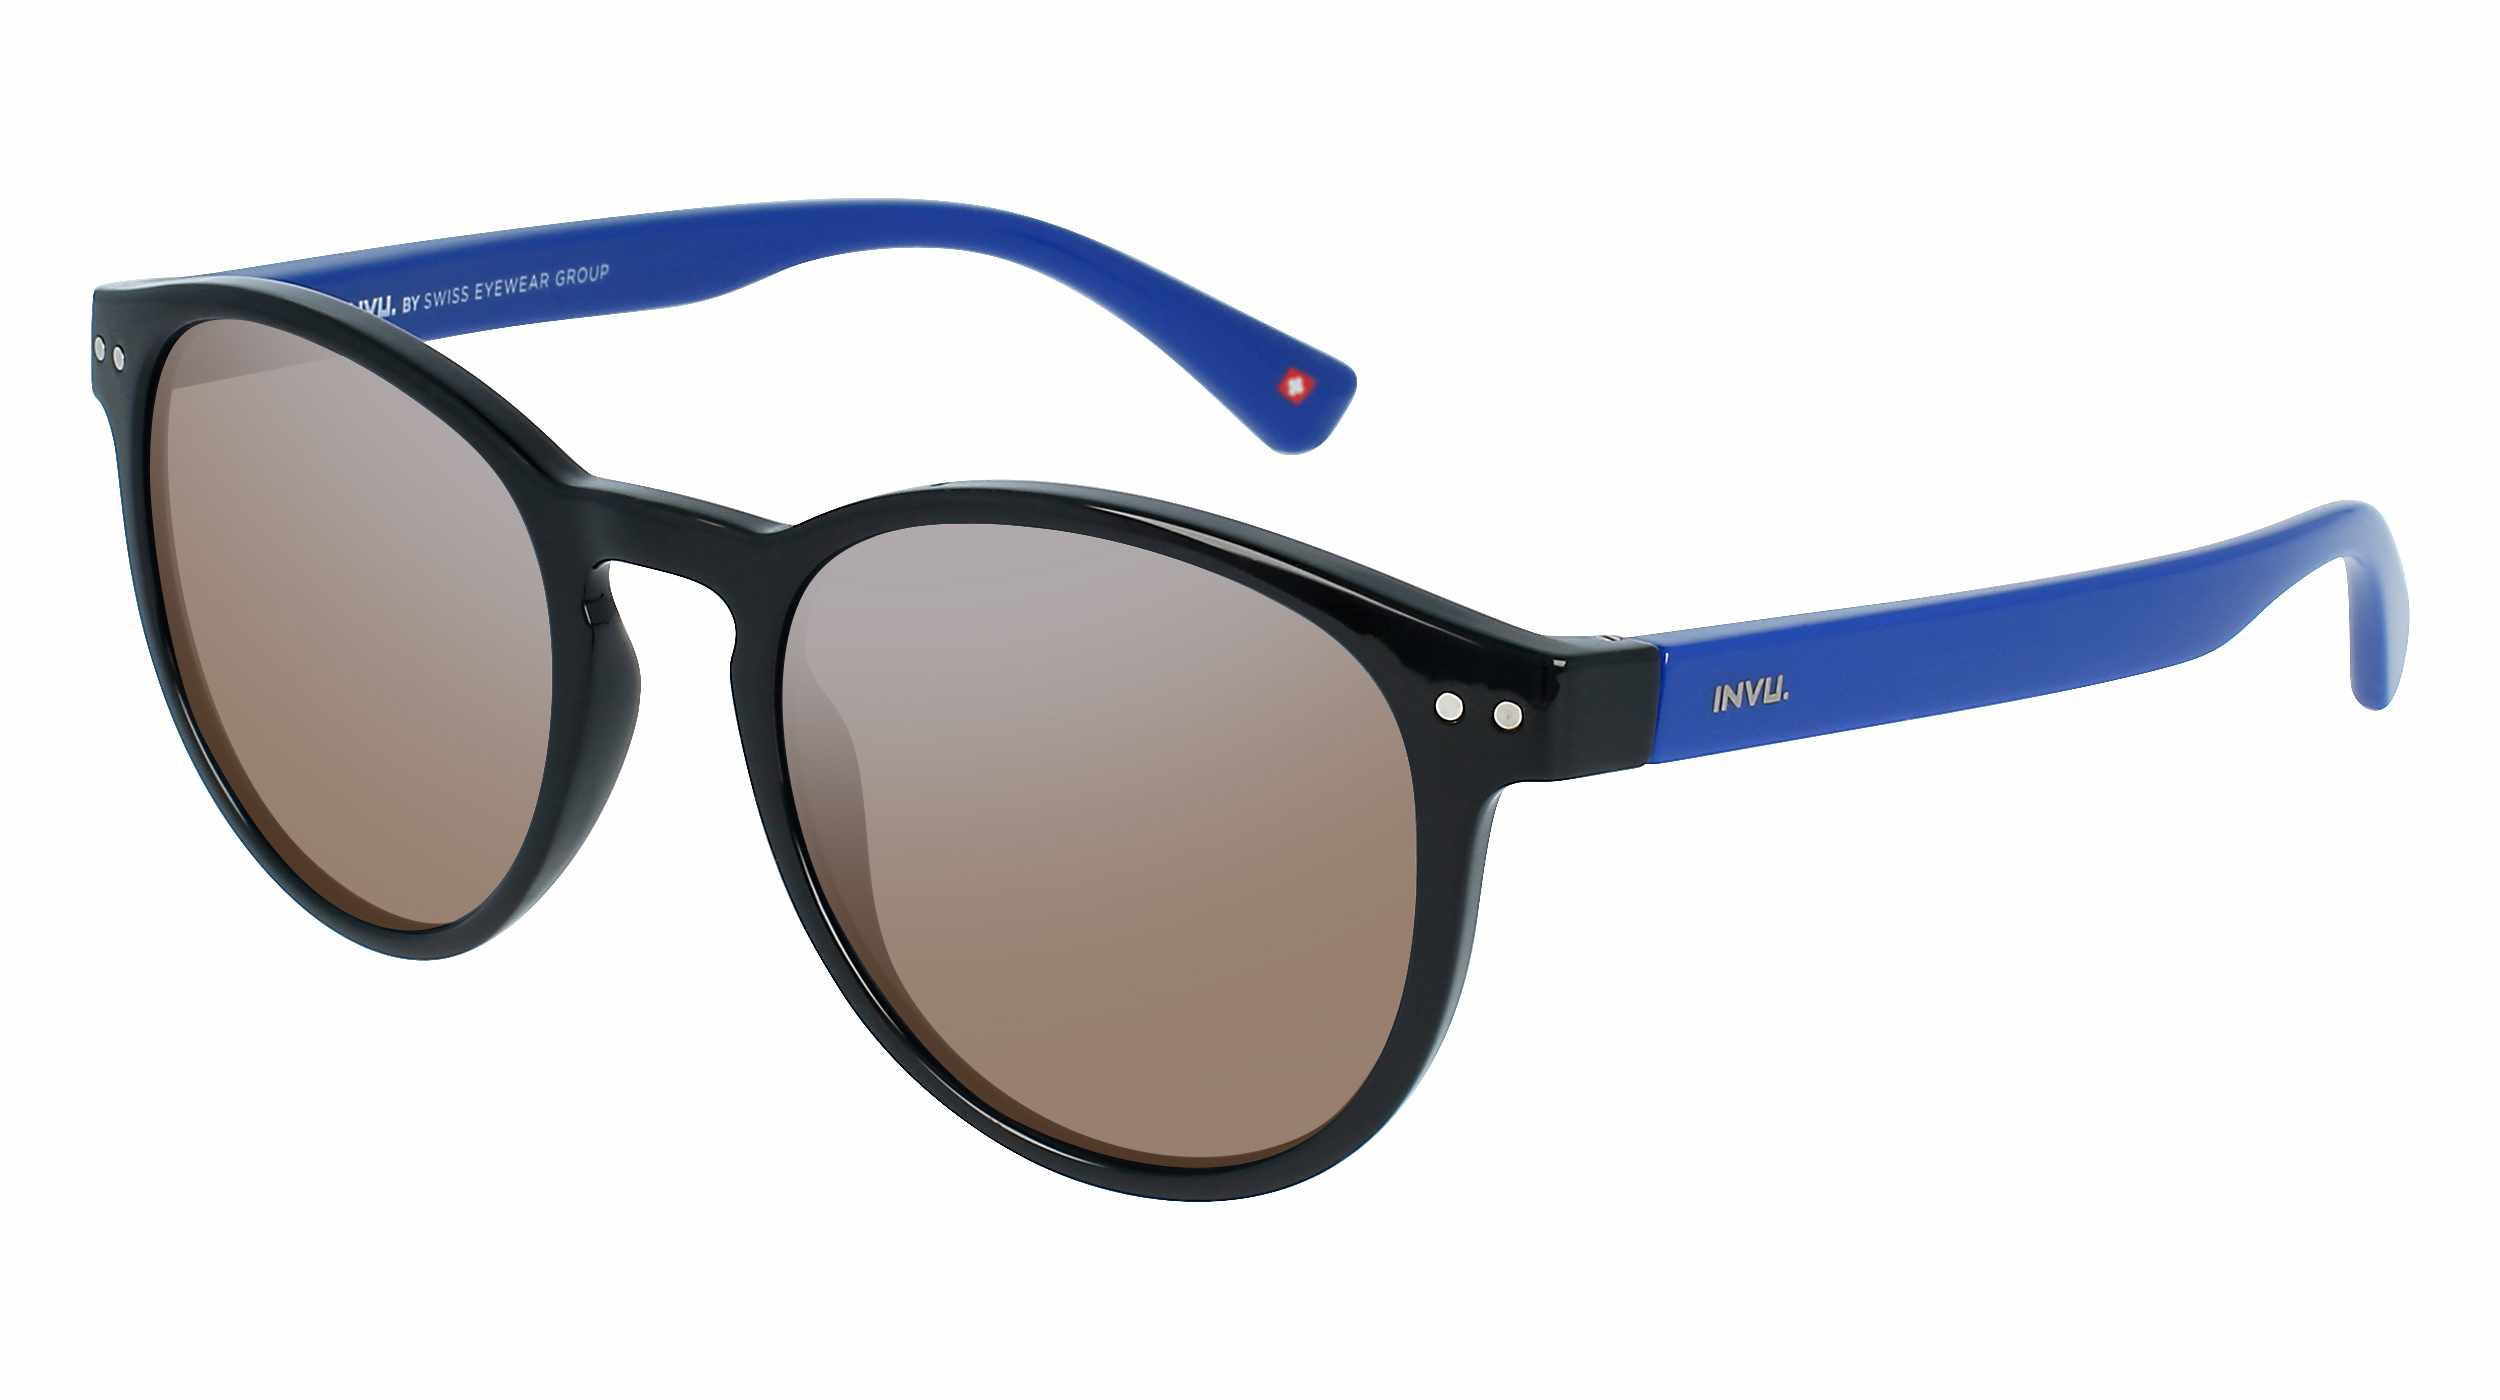 SoHo Nero Blu Marrone